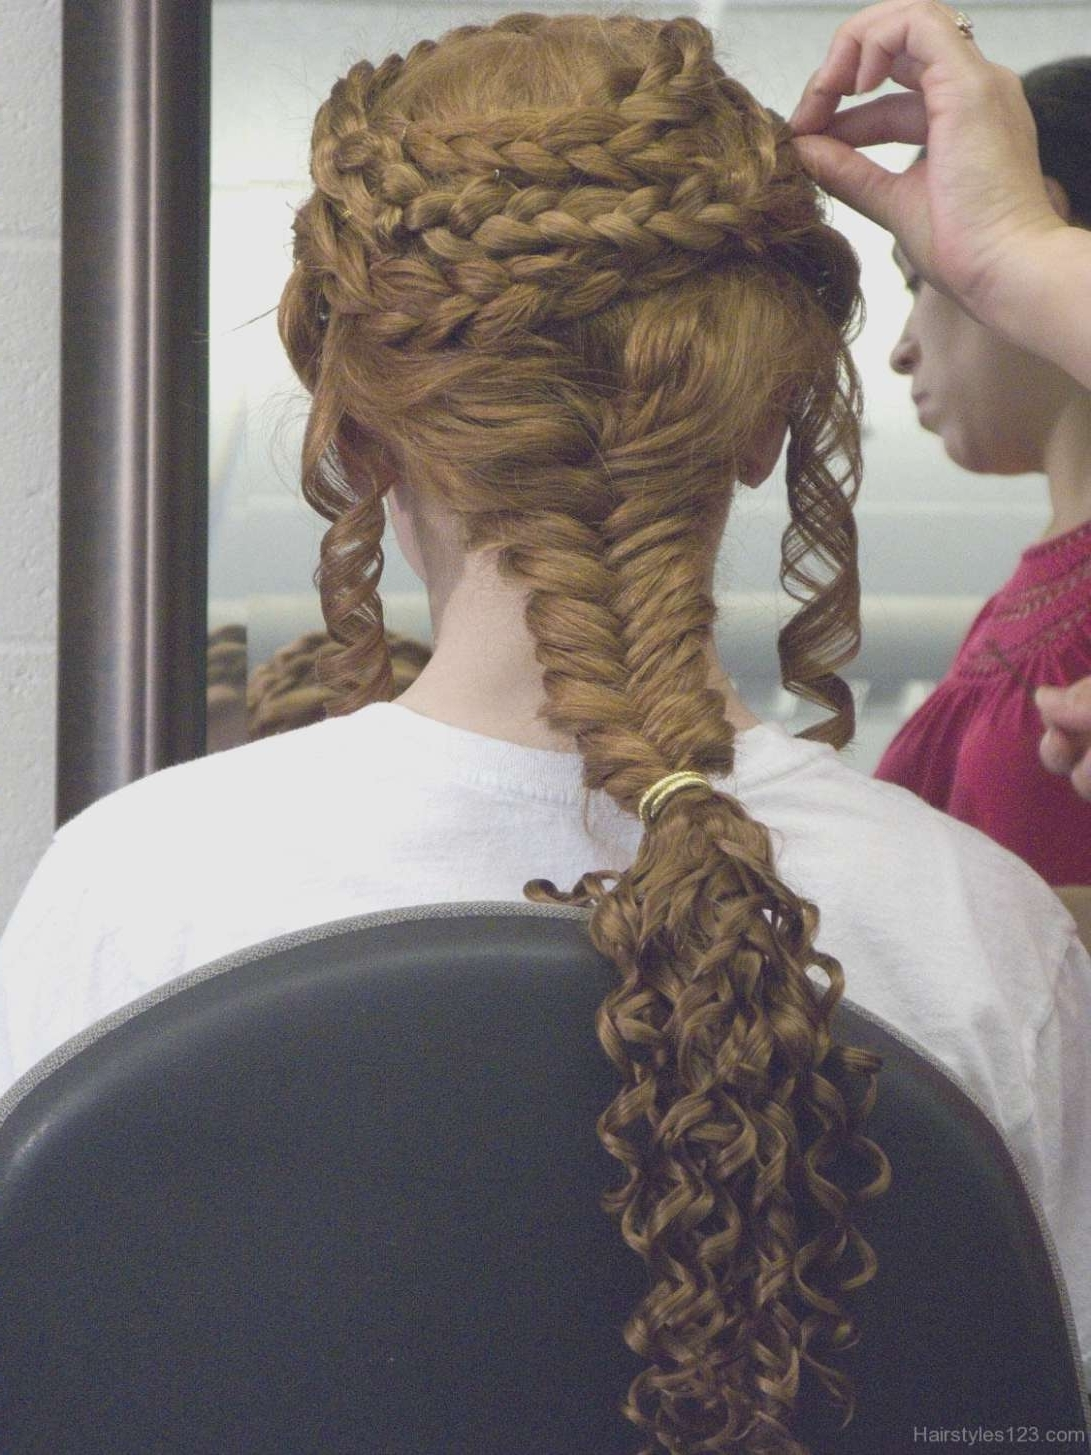 Victorian Braid Hairstyles Victorian Hairstyles Page 2 – Gulfsource Within Preferred Braided Victorian Hairstyles (View 13 of 15)